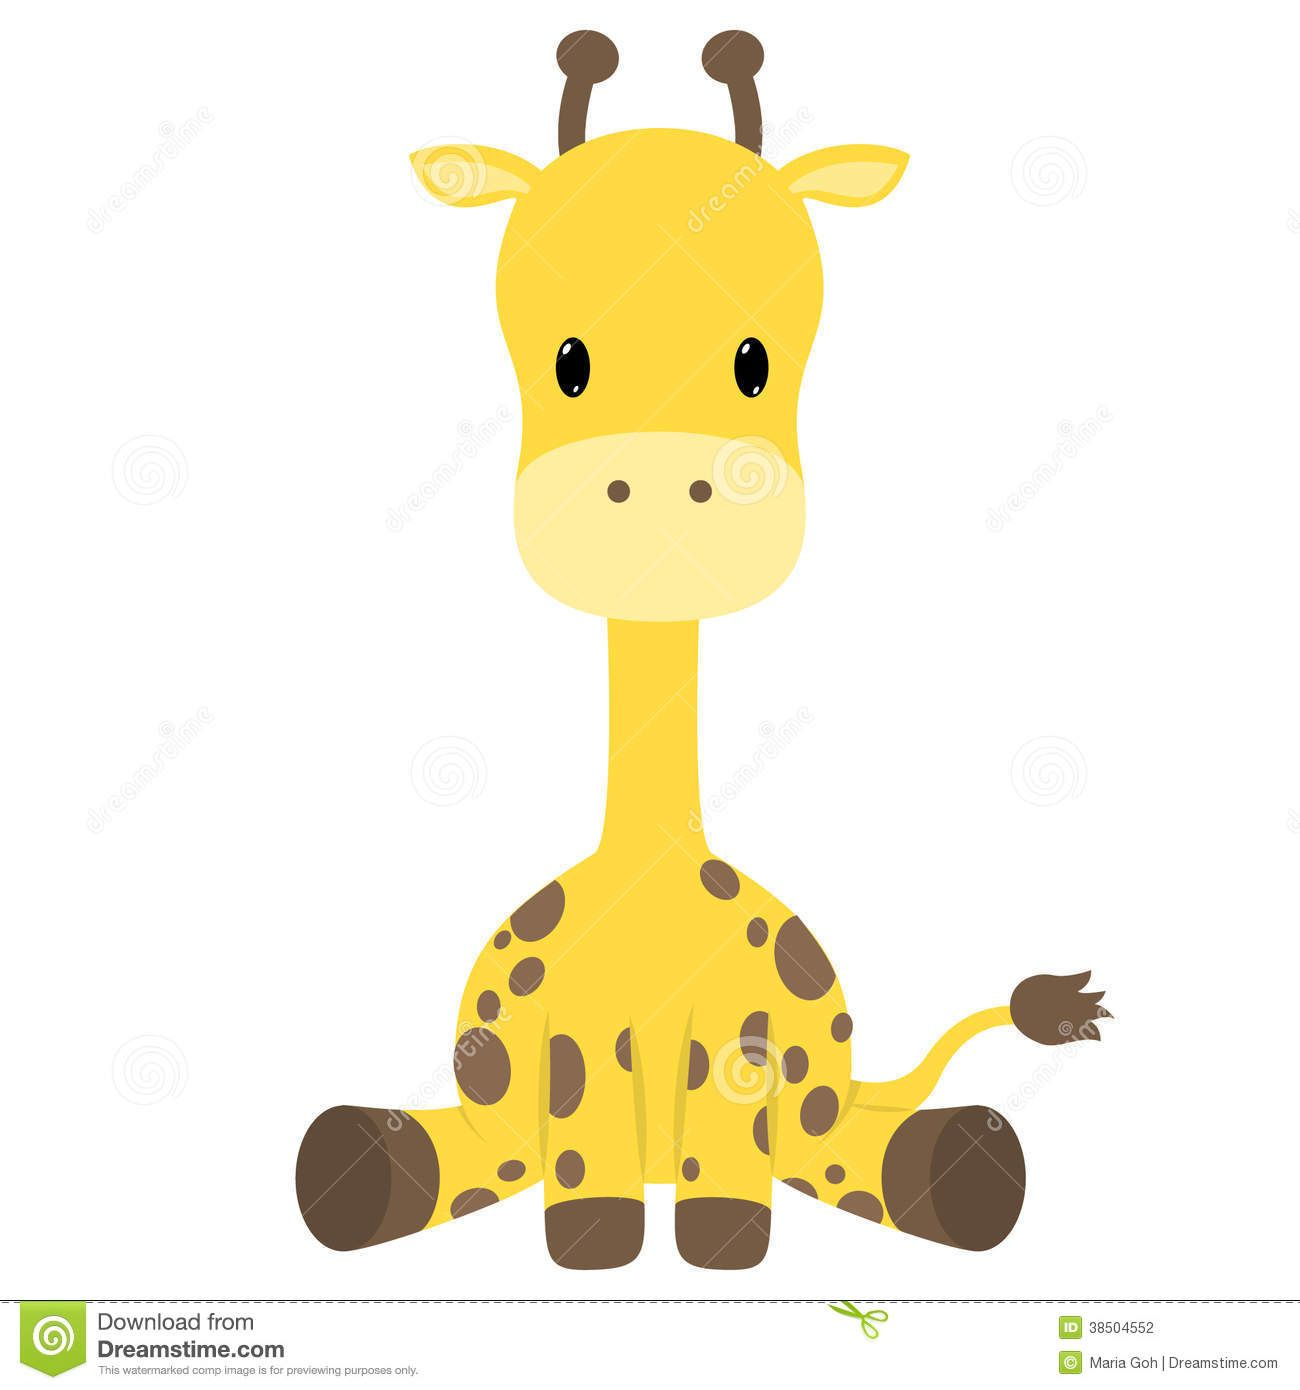 Baby giraffe pictures clipart graphic freeuse download Baby Boy Giraffe Cartoon Baby boy giraffe cartoon baby ... graphic freeuse download